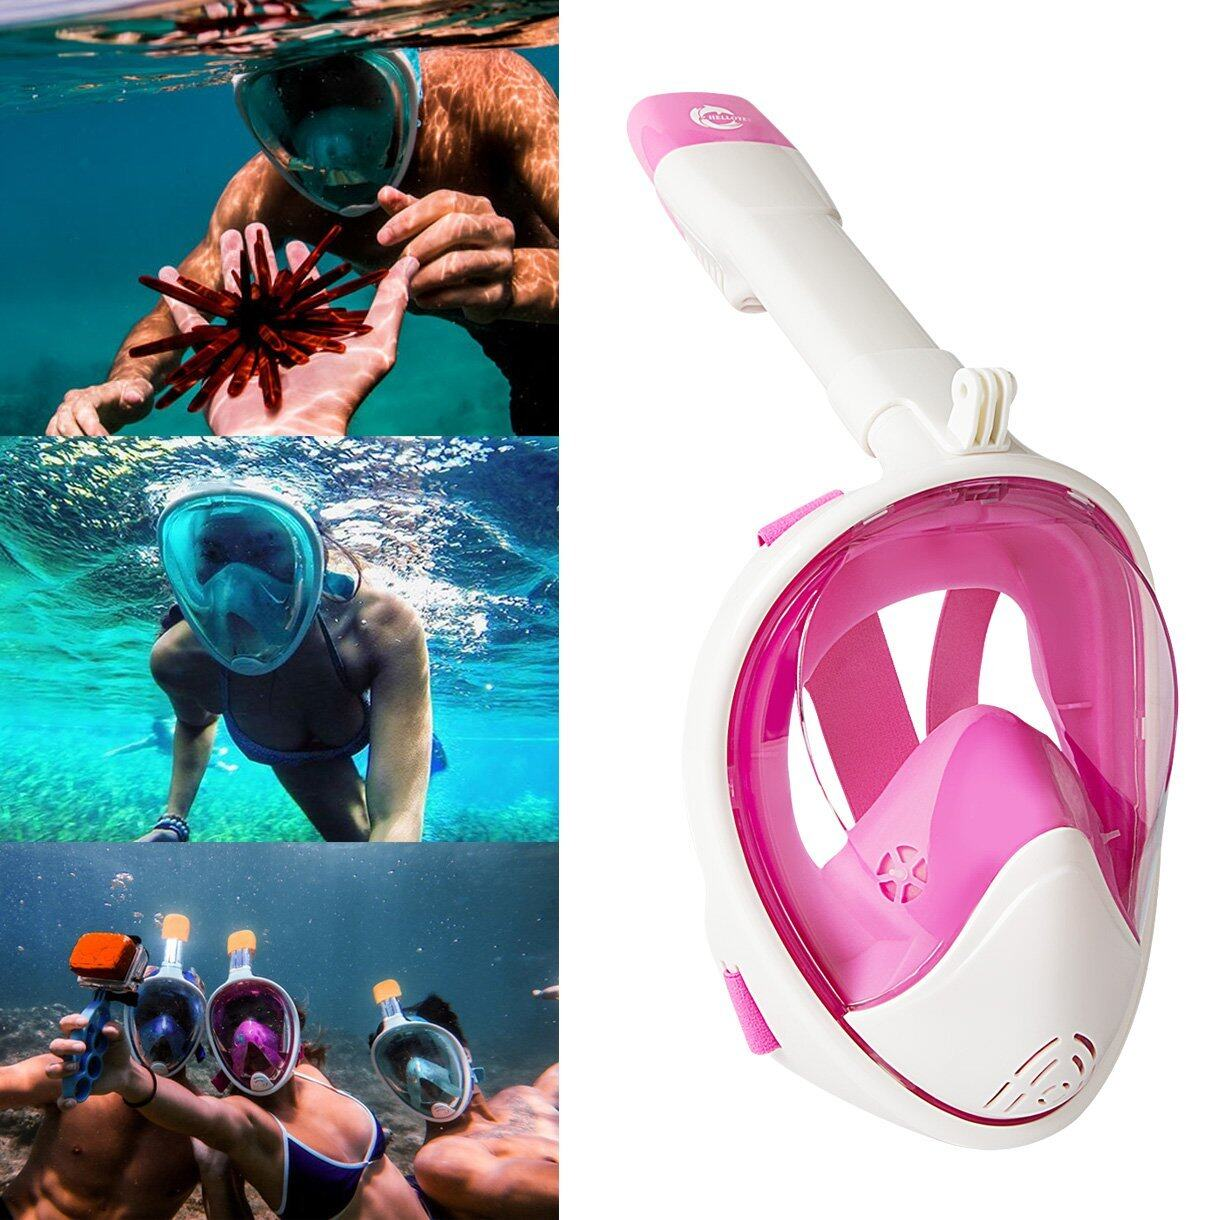 HELLOYEE Full Face Snorkel Mask 180° Panoramic View Breathe Free For Adults And Kids 2